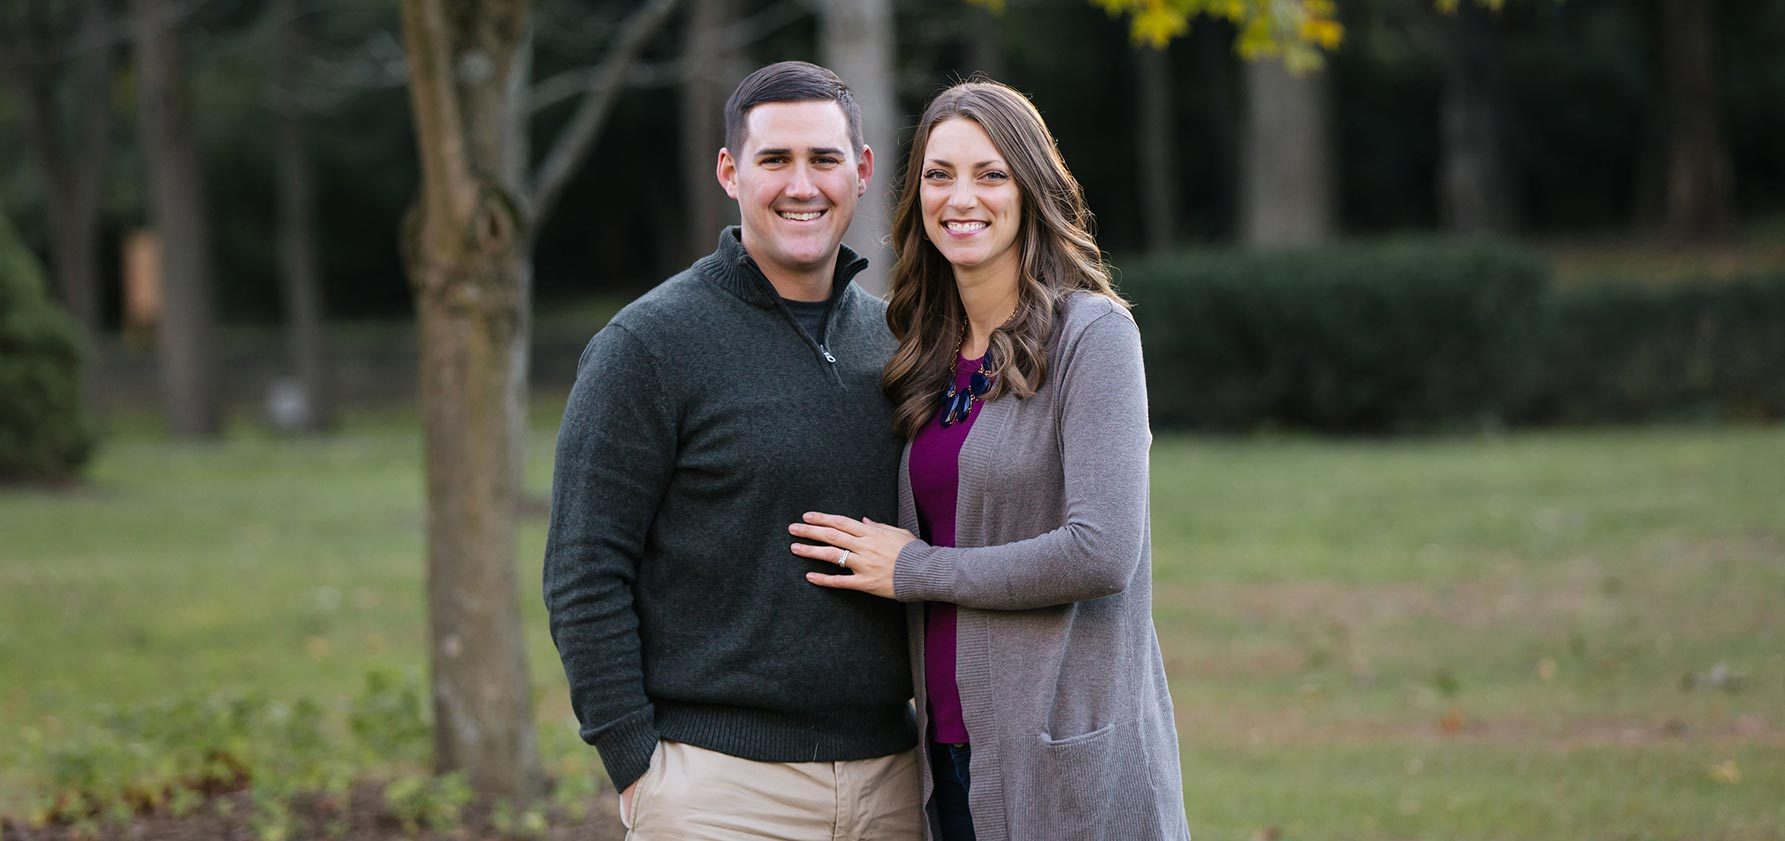 Marc and Maria DeBonis Braxmeier '09 enjoy the outdoors together.